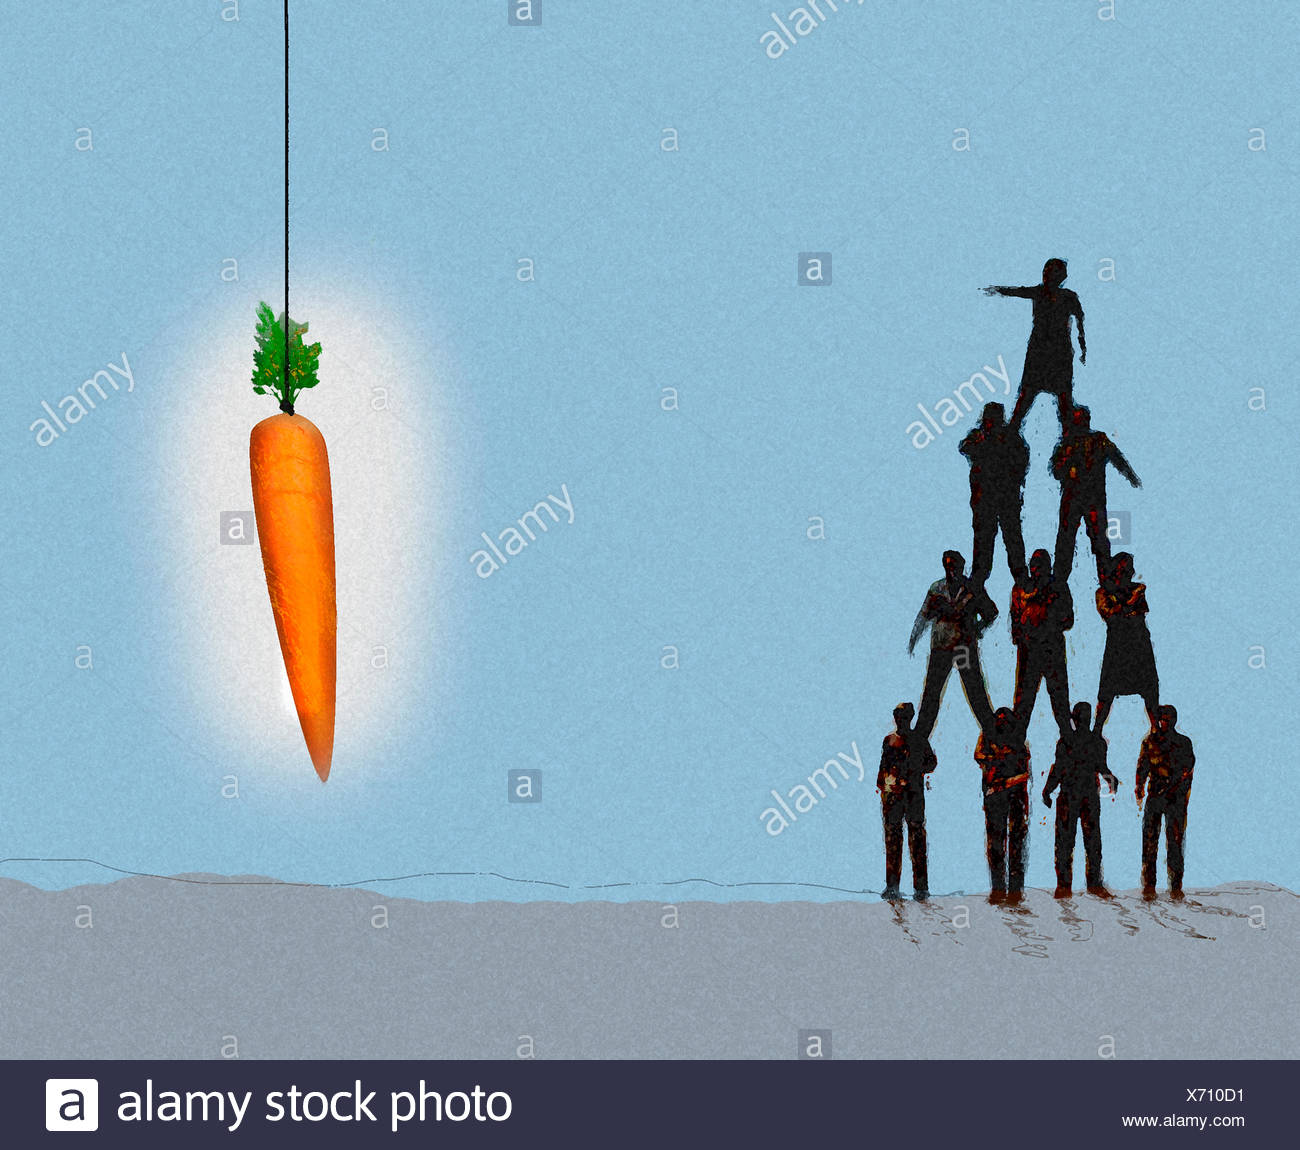 Woman on top of human pyramid pointing to large carrot dangling - Stock Image